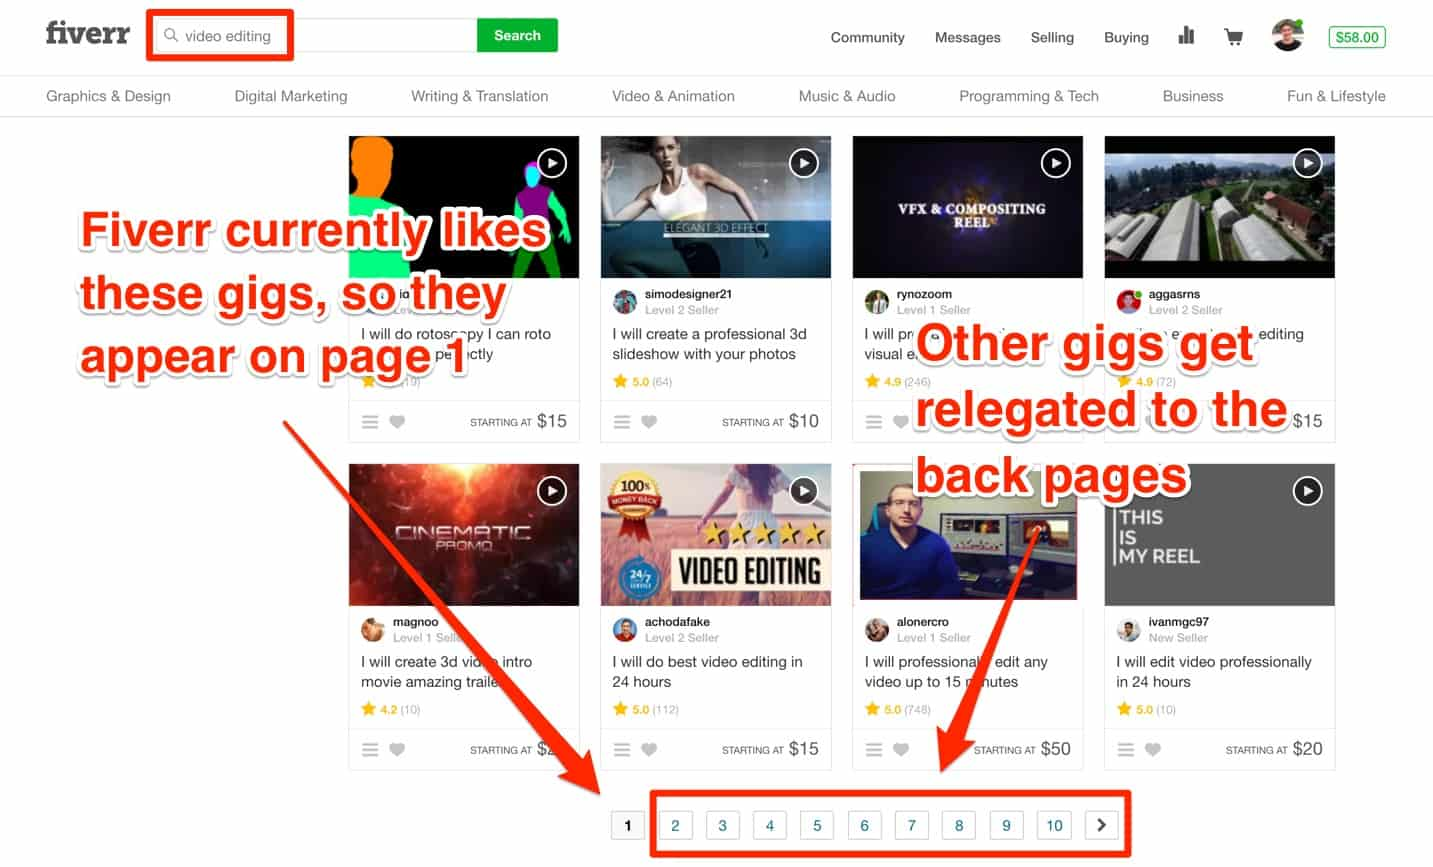 Make Money on Fiverr: 17 Advanced Tips to LEVEL UP Your